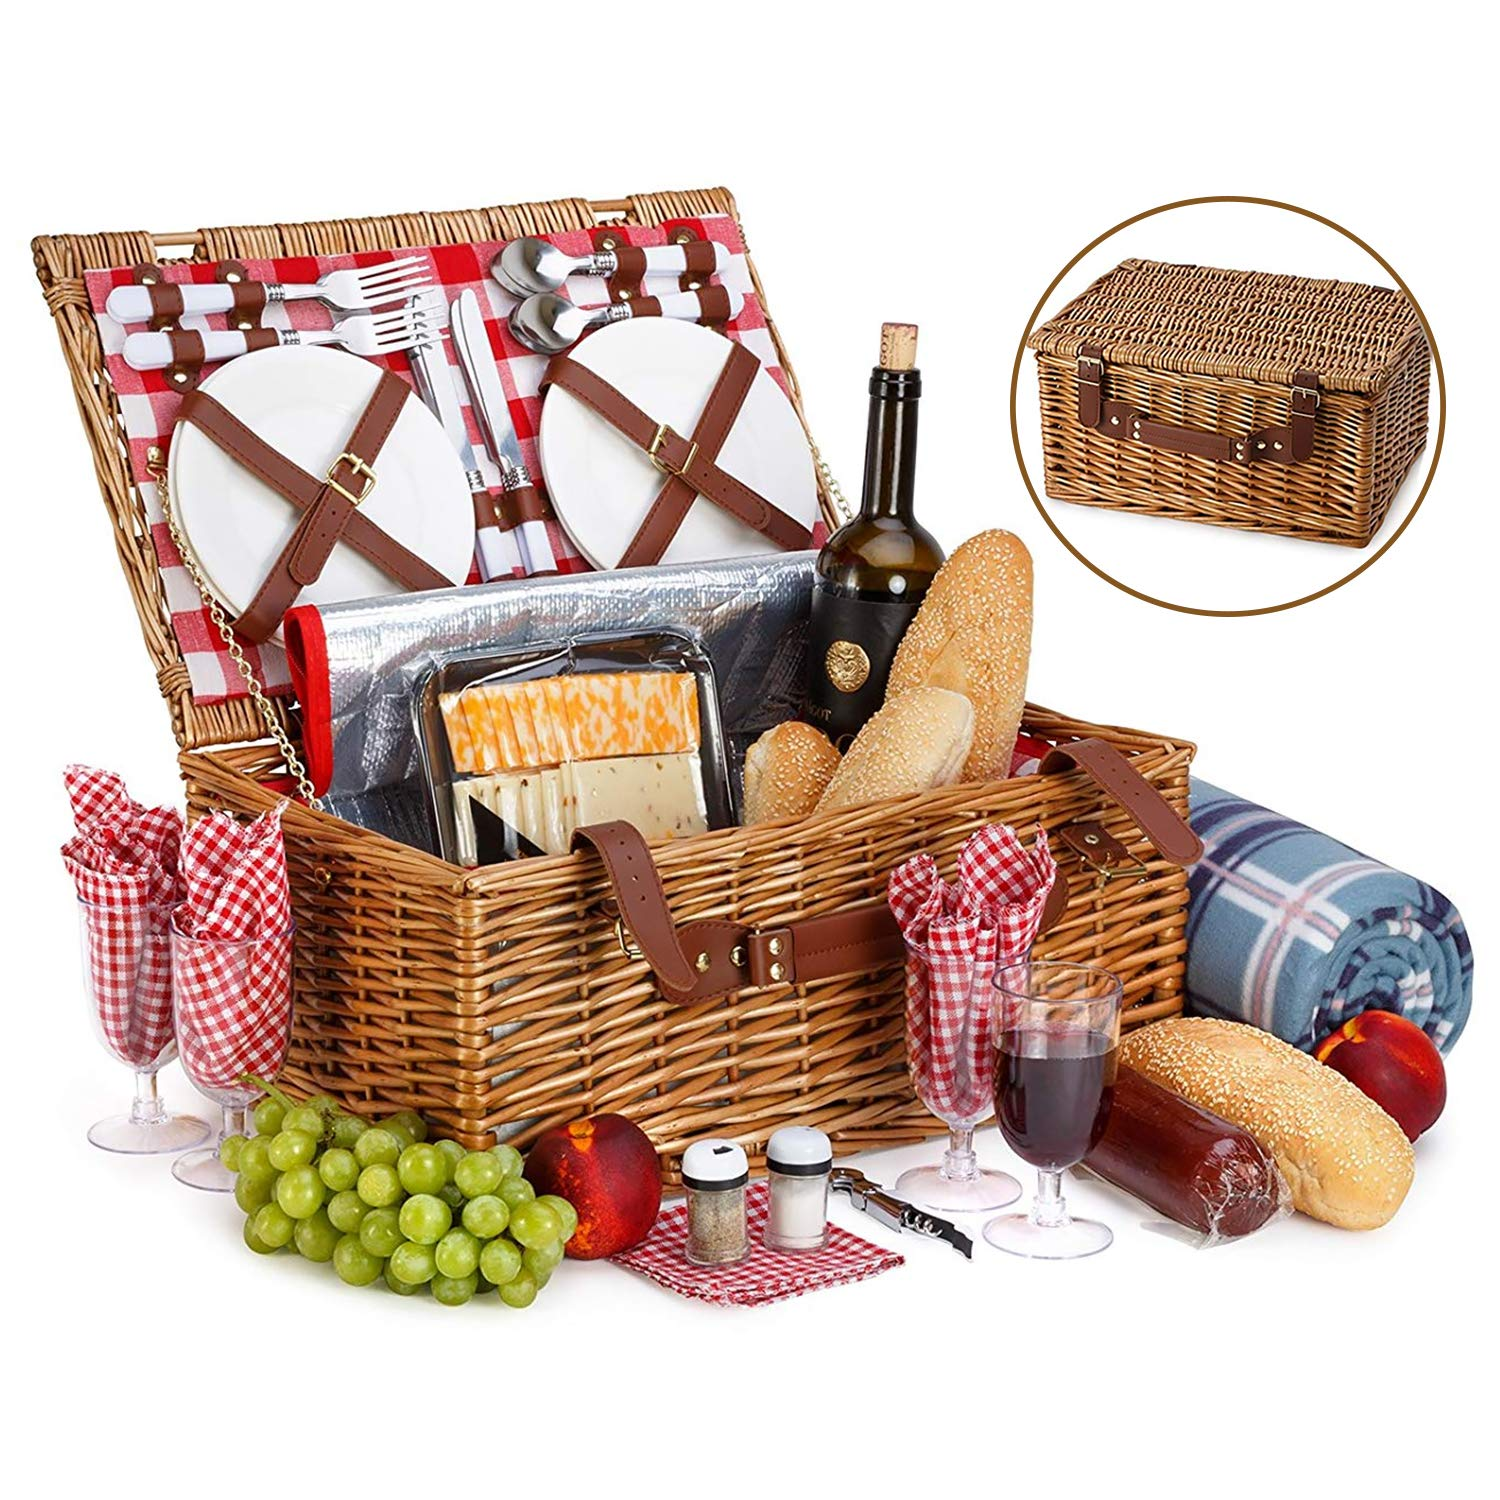 Picnic Basket Set For 4 With Insulated Cooler Bag- 30 Pc Kit Includes Wicker Basket with Handle and Lid, Wine Glasses, Stainless Steel Flatware, Ceramic Plates, Linen Napkins, Utensil Set and Blanket by Vysta